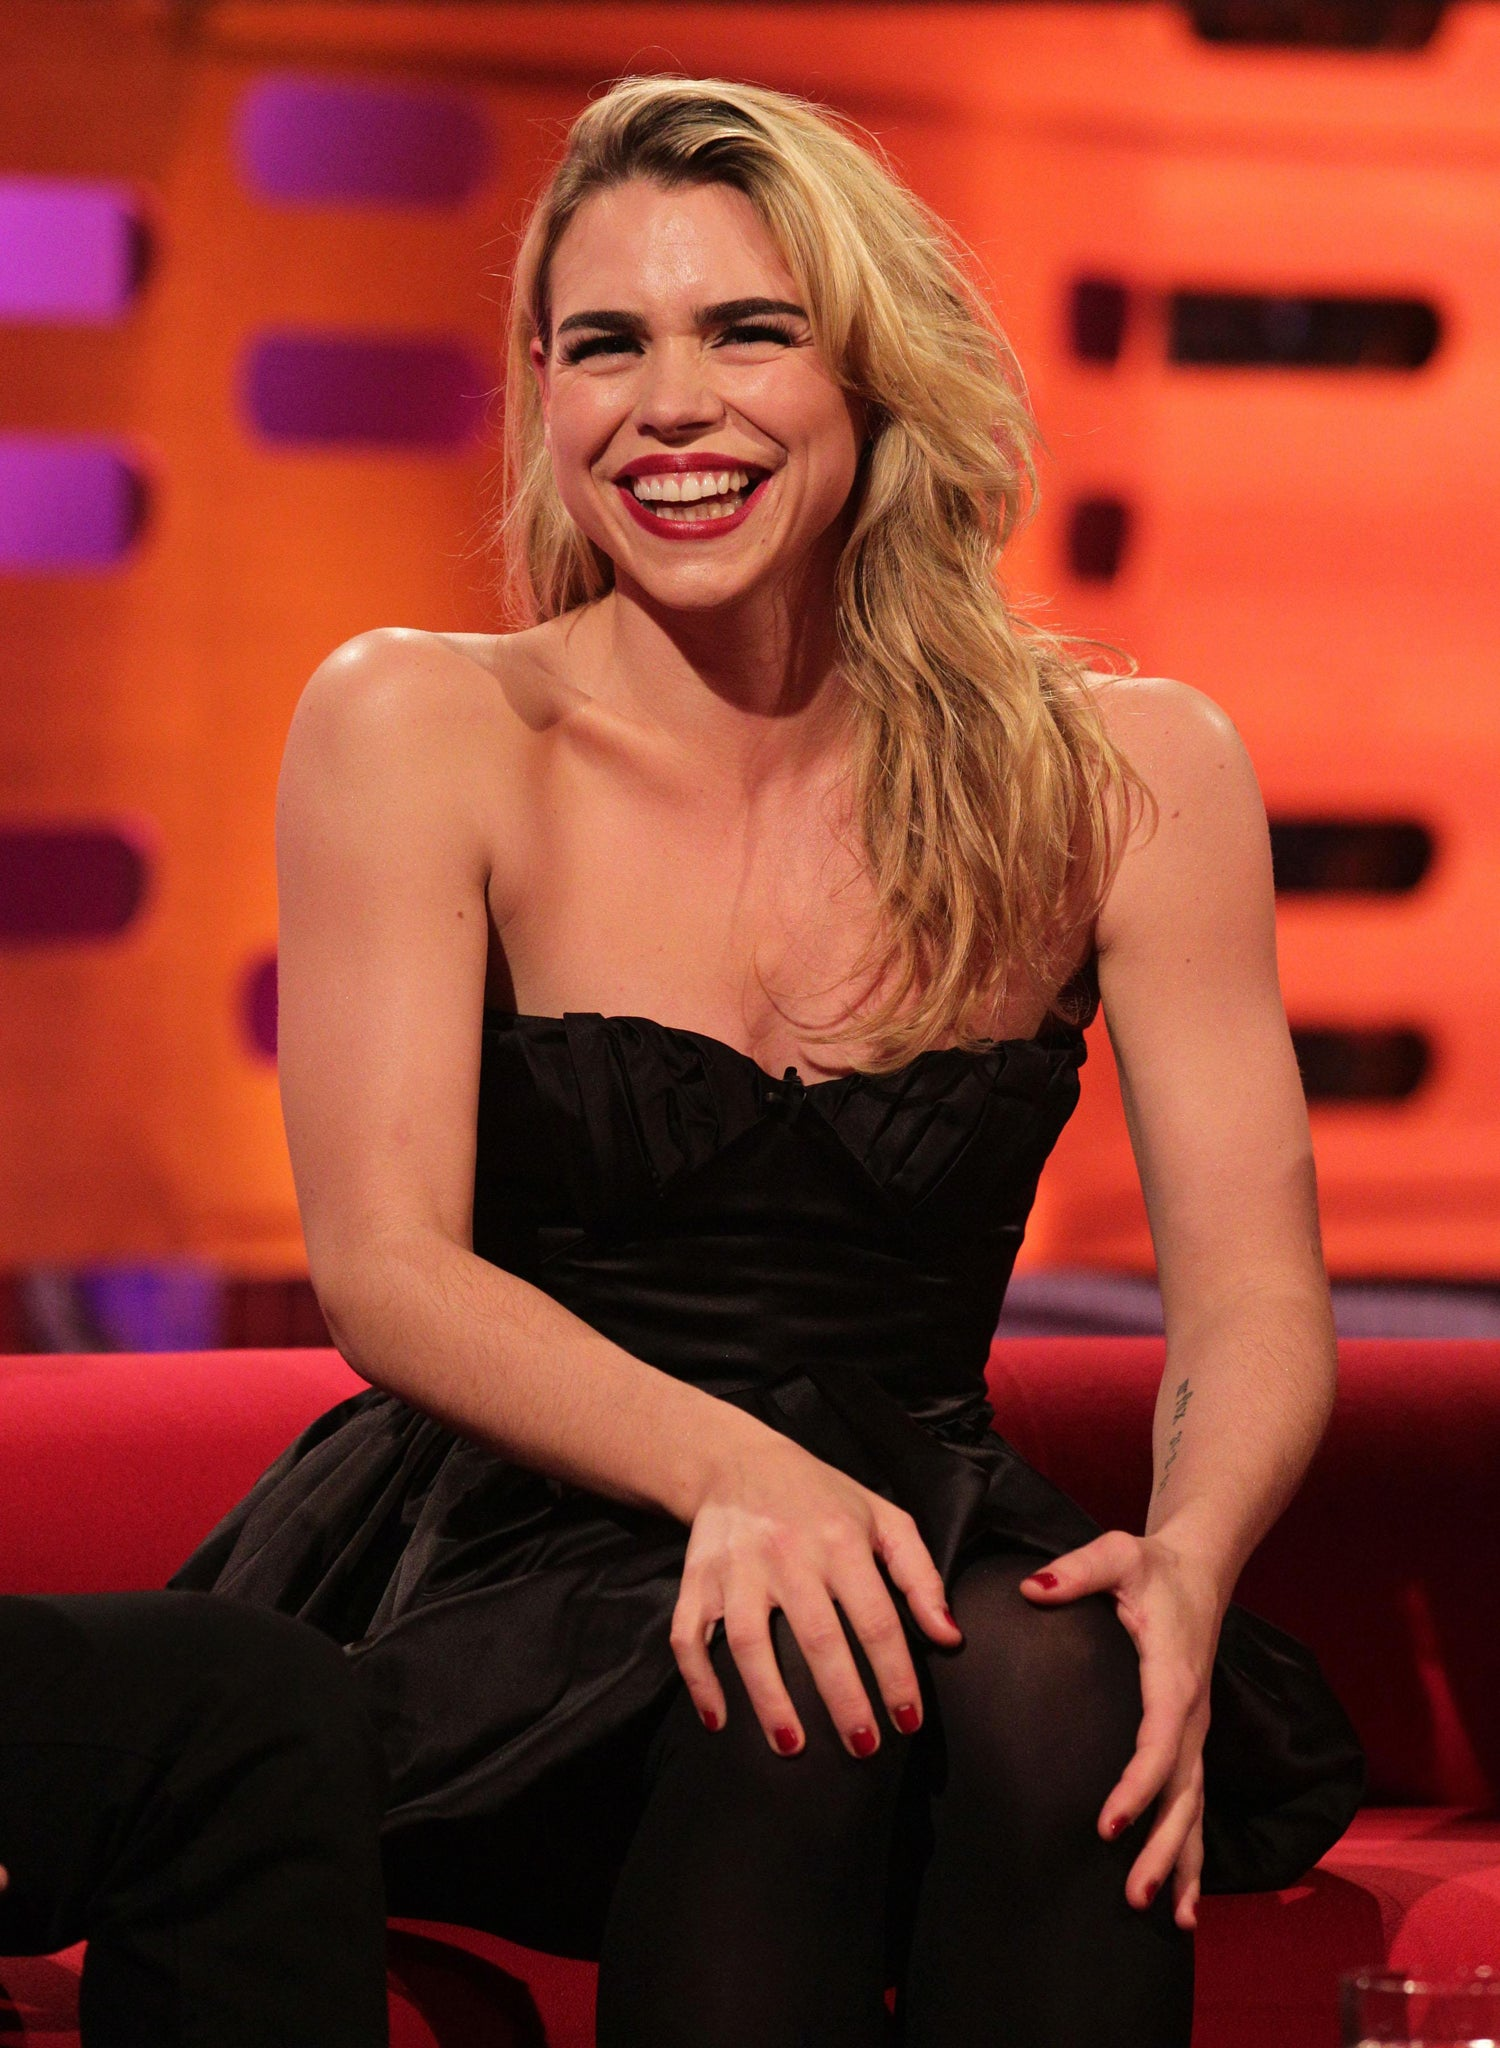 billie piper dating 2013 In 1999, piper was nominated for two brit awards and won two awards at the 1999 smash hits poll winners' party, although she was reduced to tears at the latter ceremony after being booed by fans of ritchie neville, who she was dating at the time she then started to tour and release in asia the singles and the album.